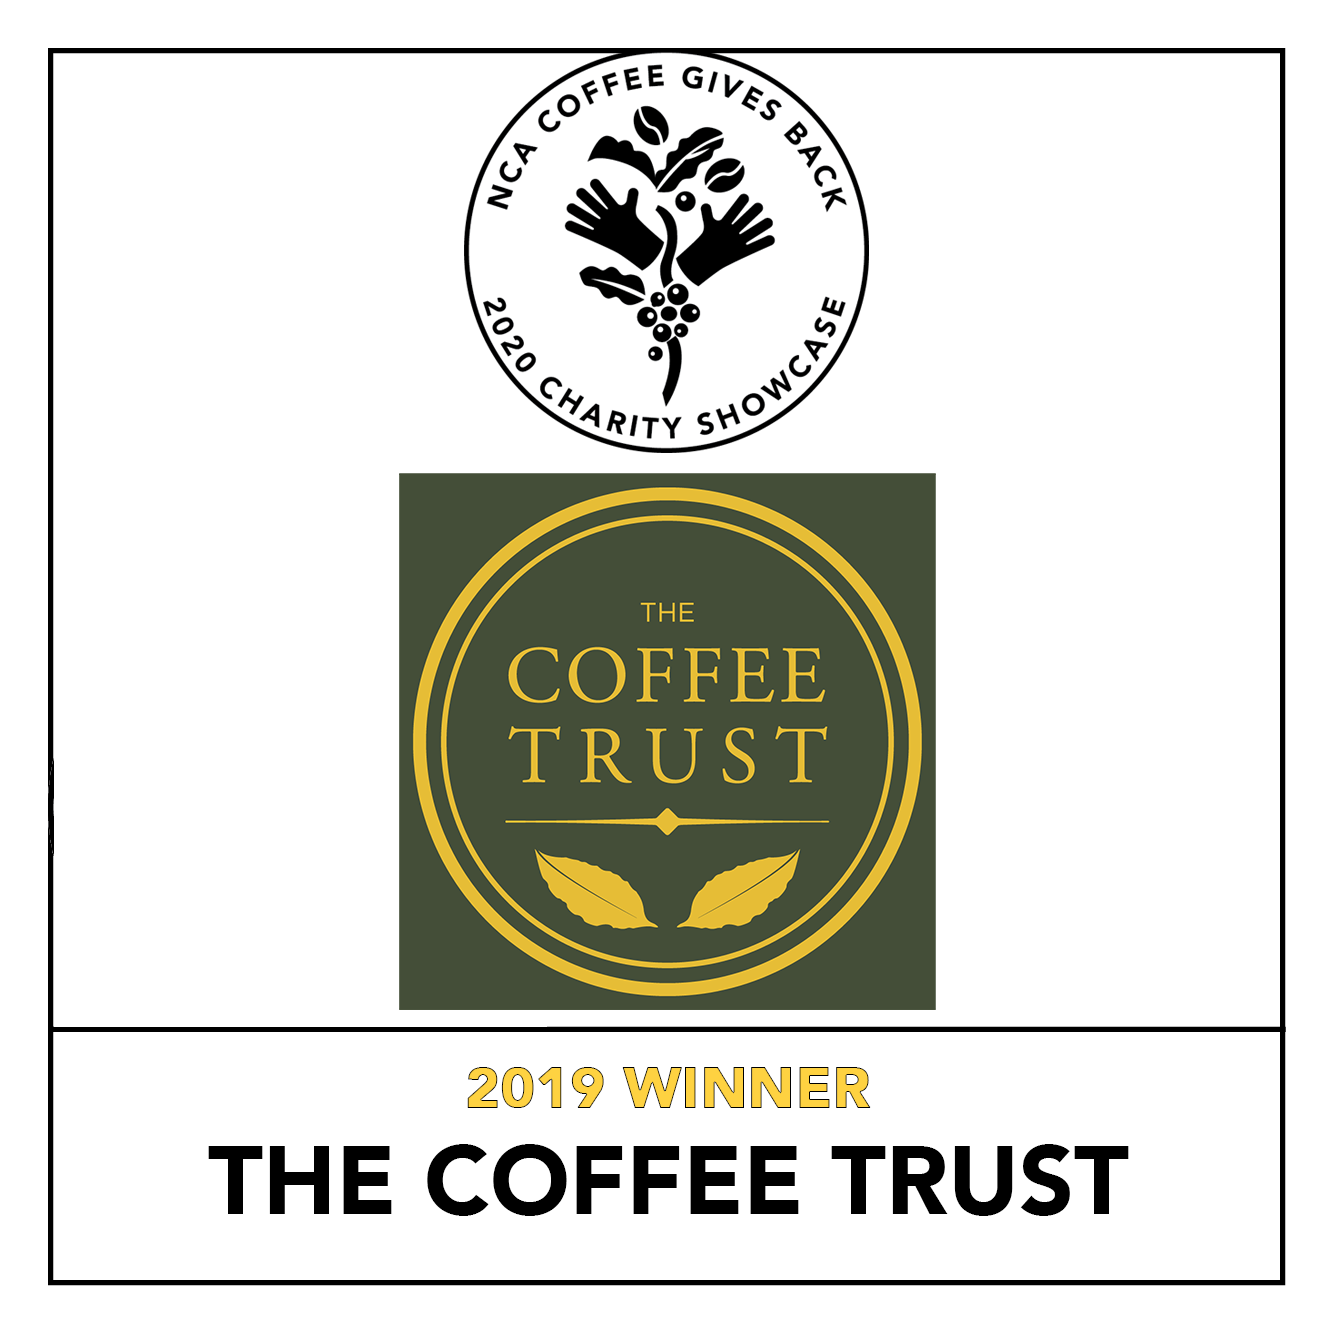 The Coffee Trust